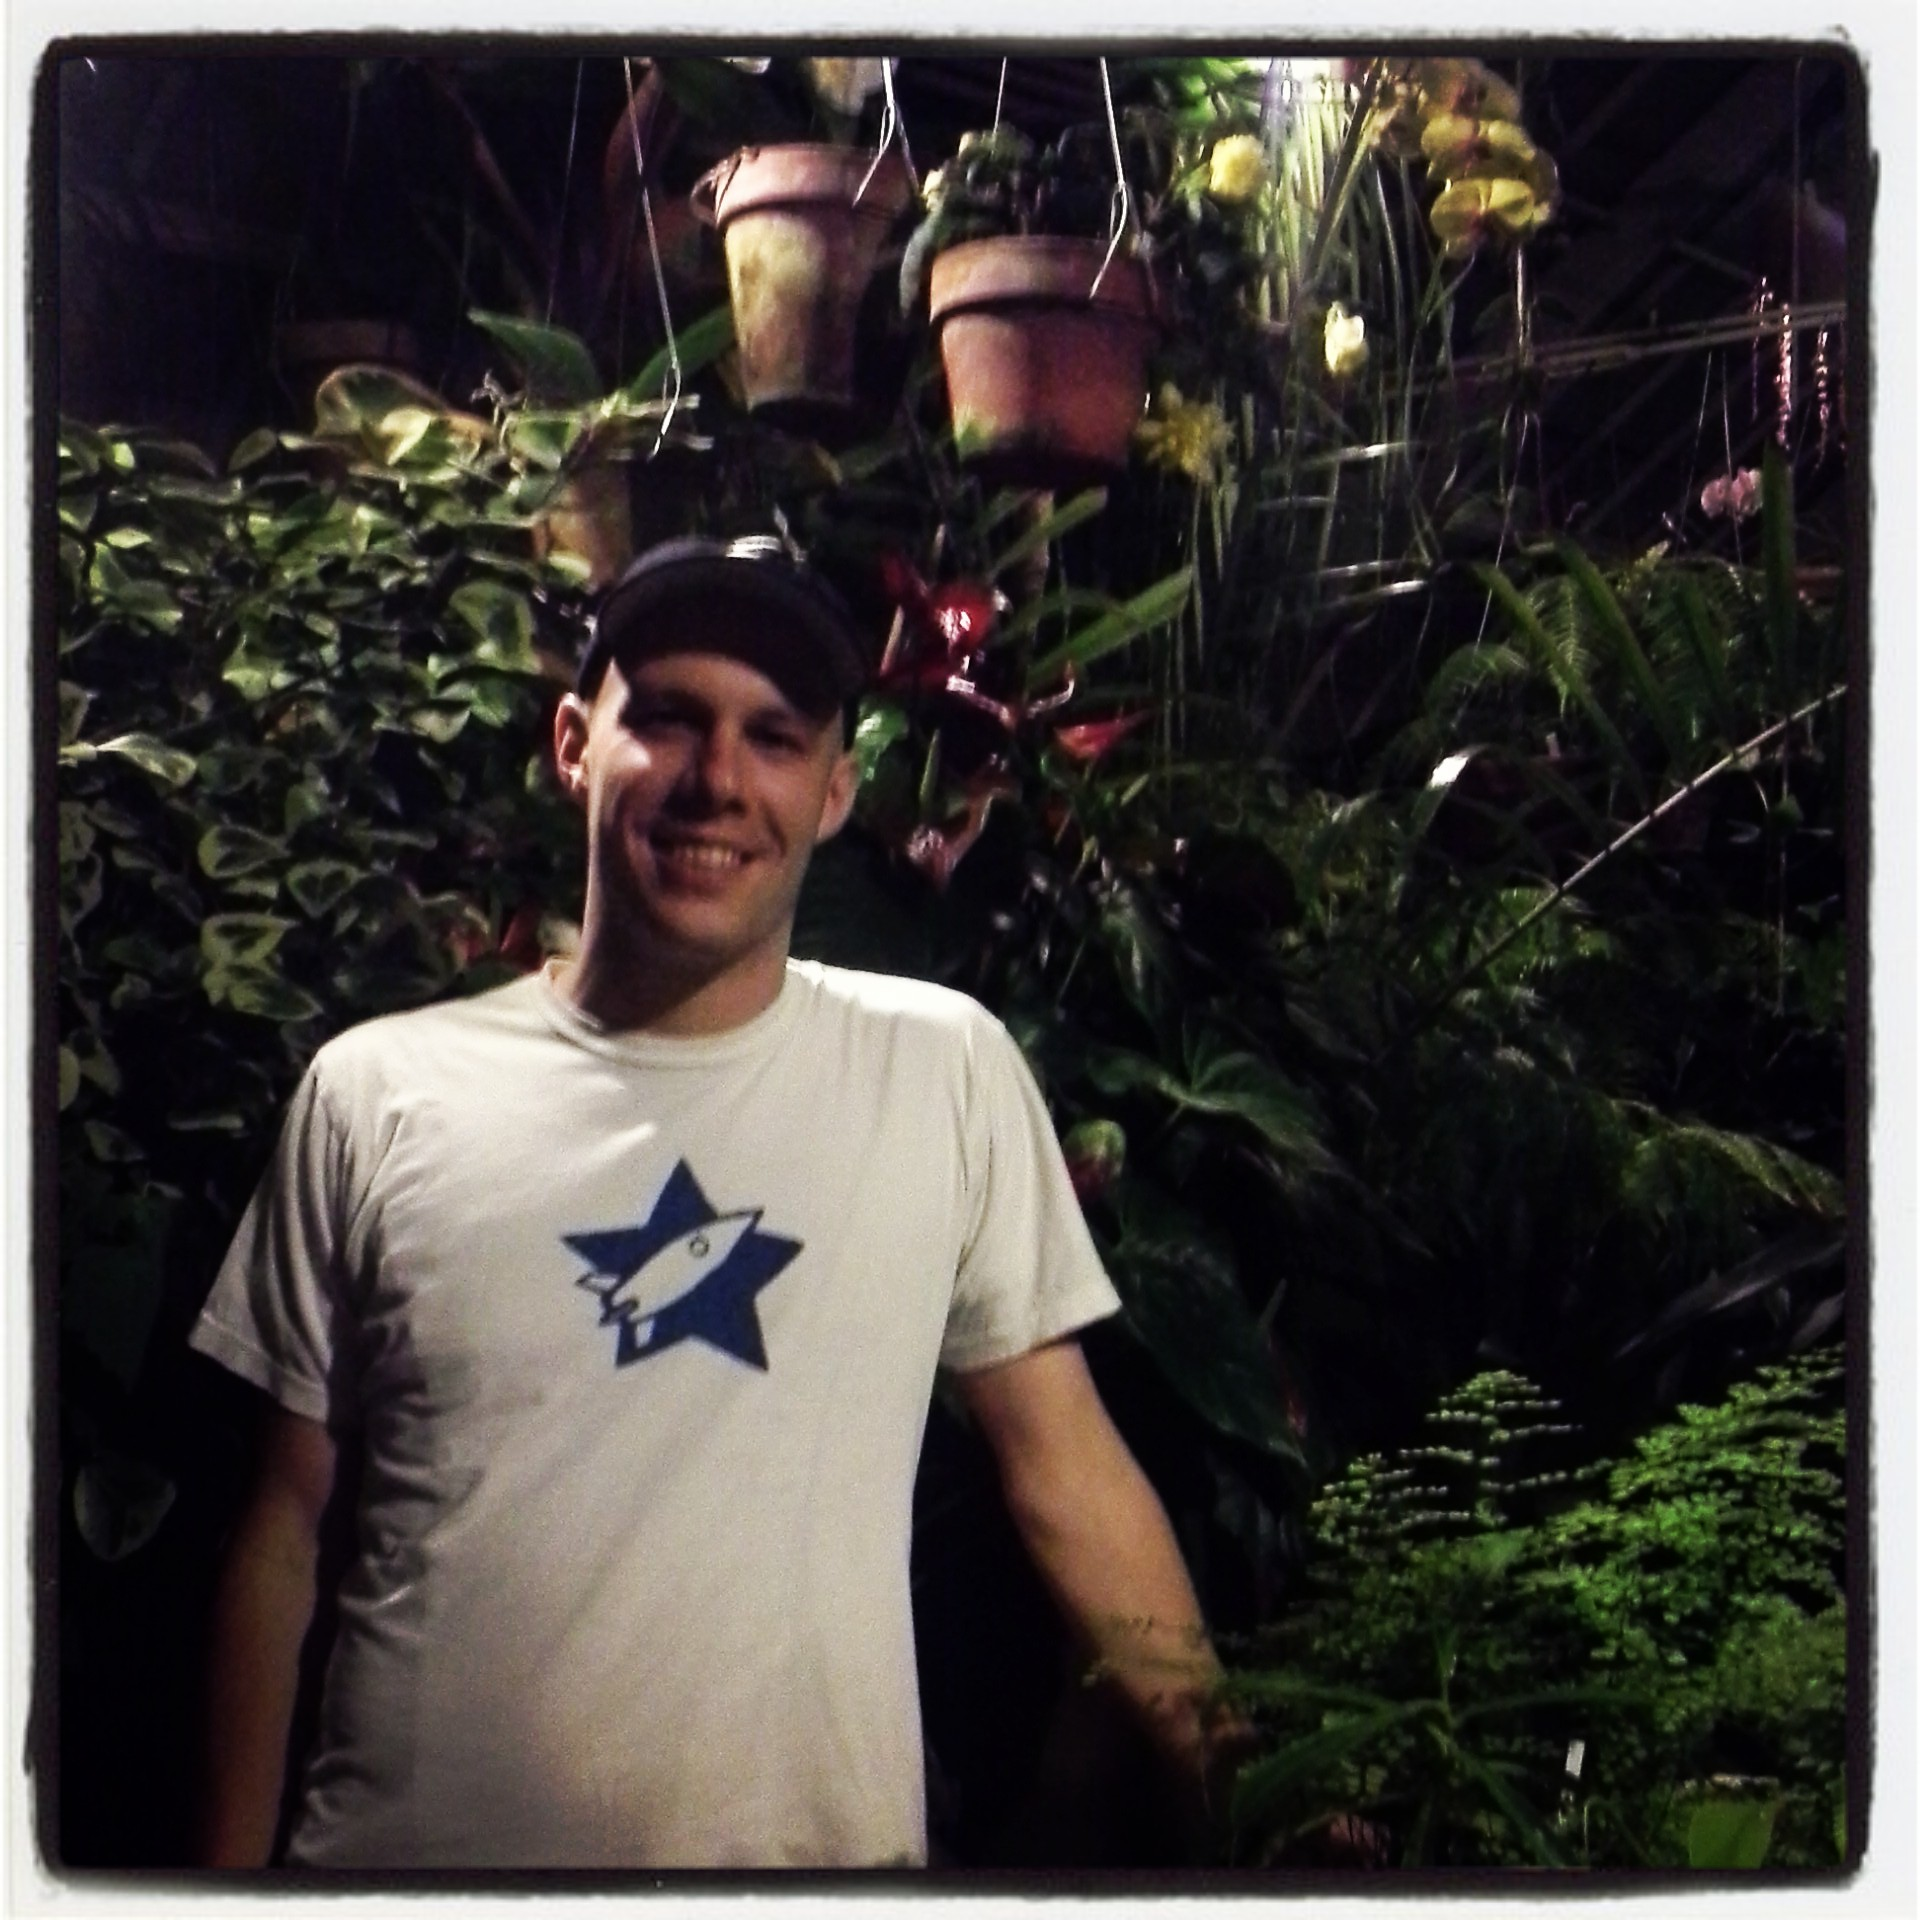 I visited the conservatory of flowers with Leonard Crosby.